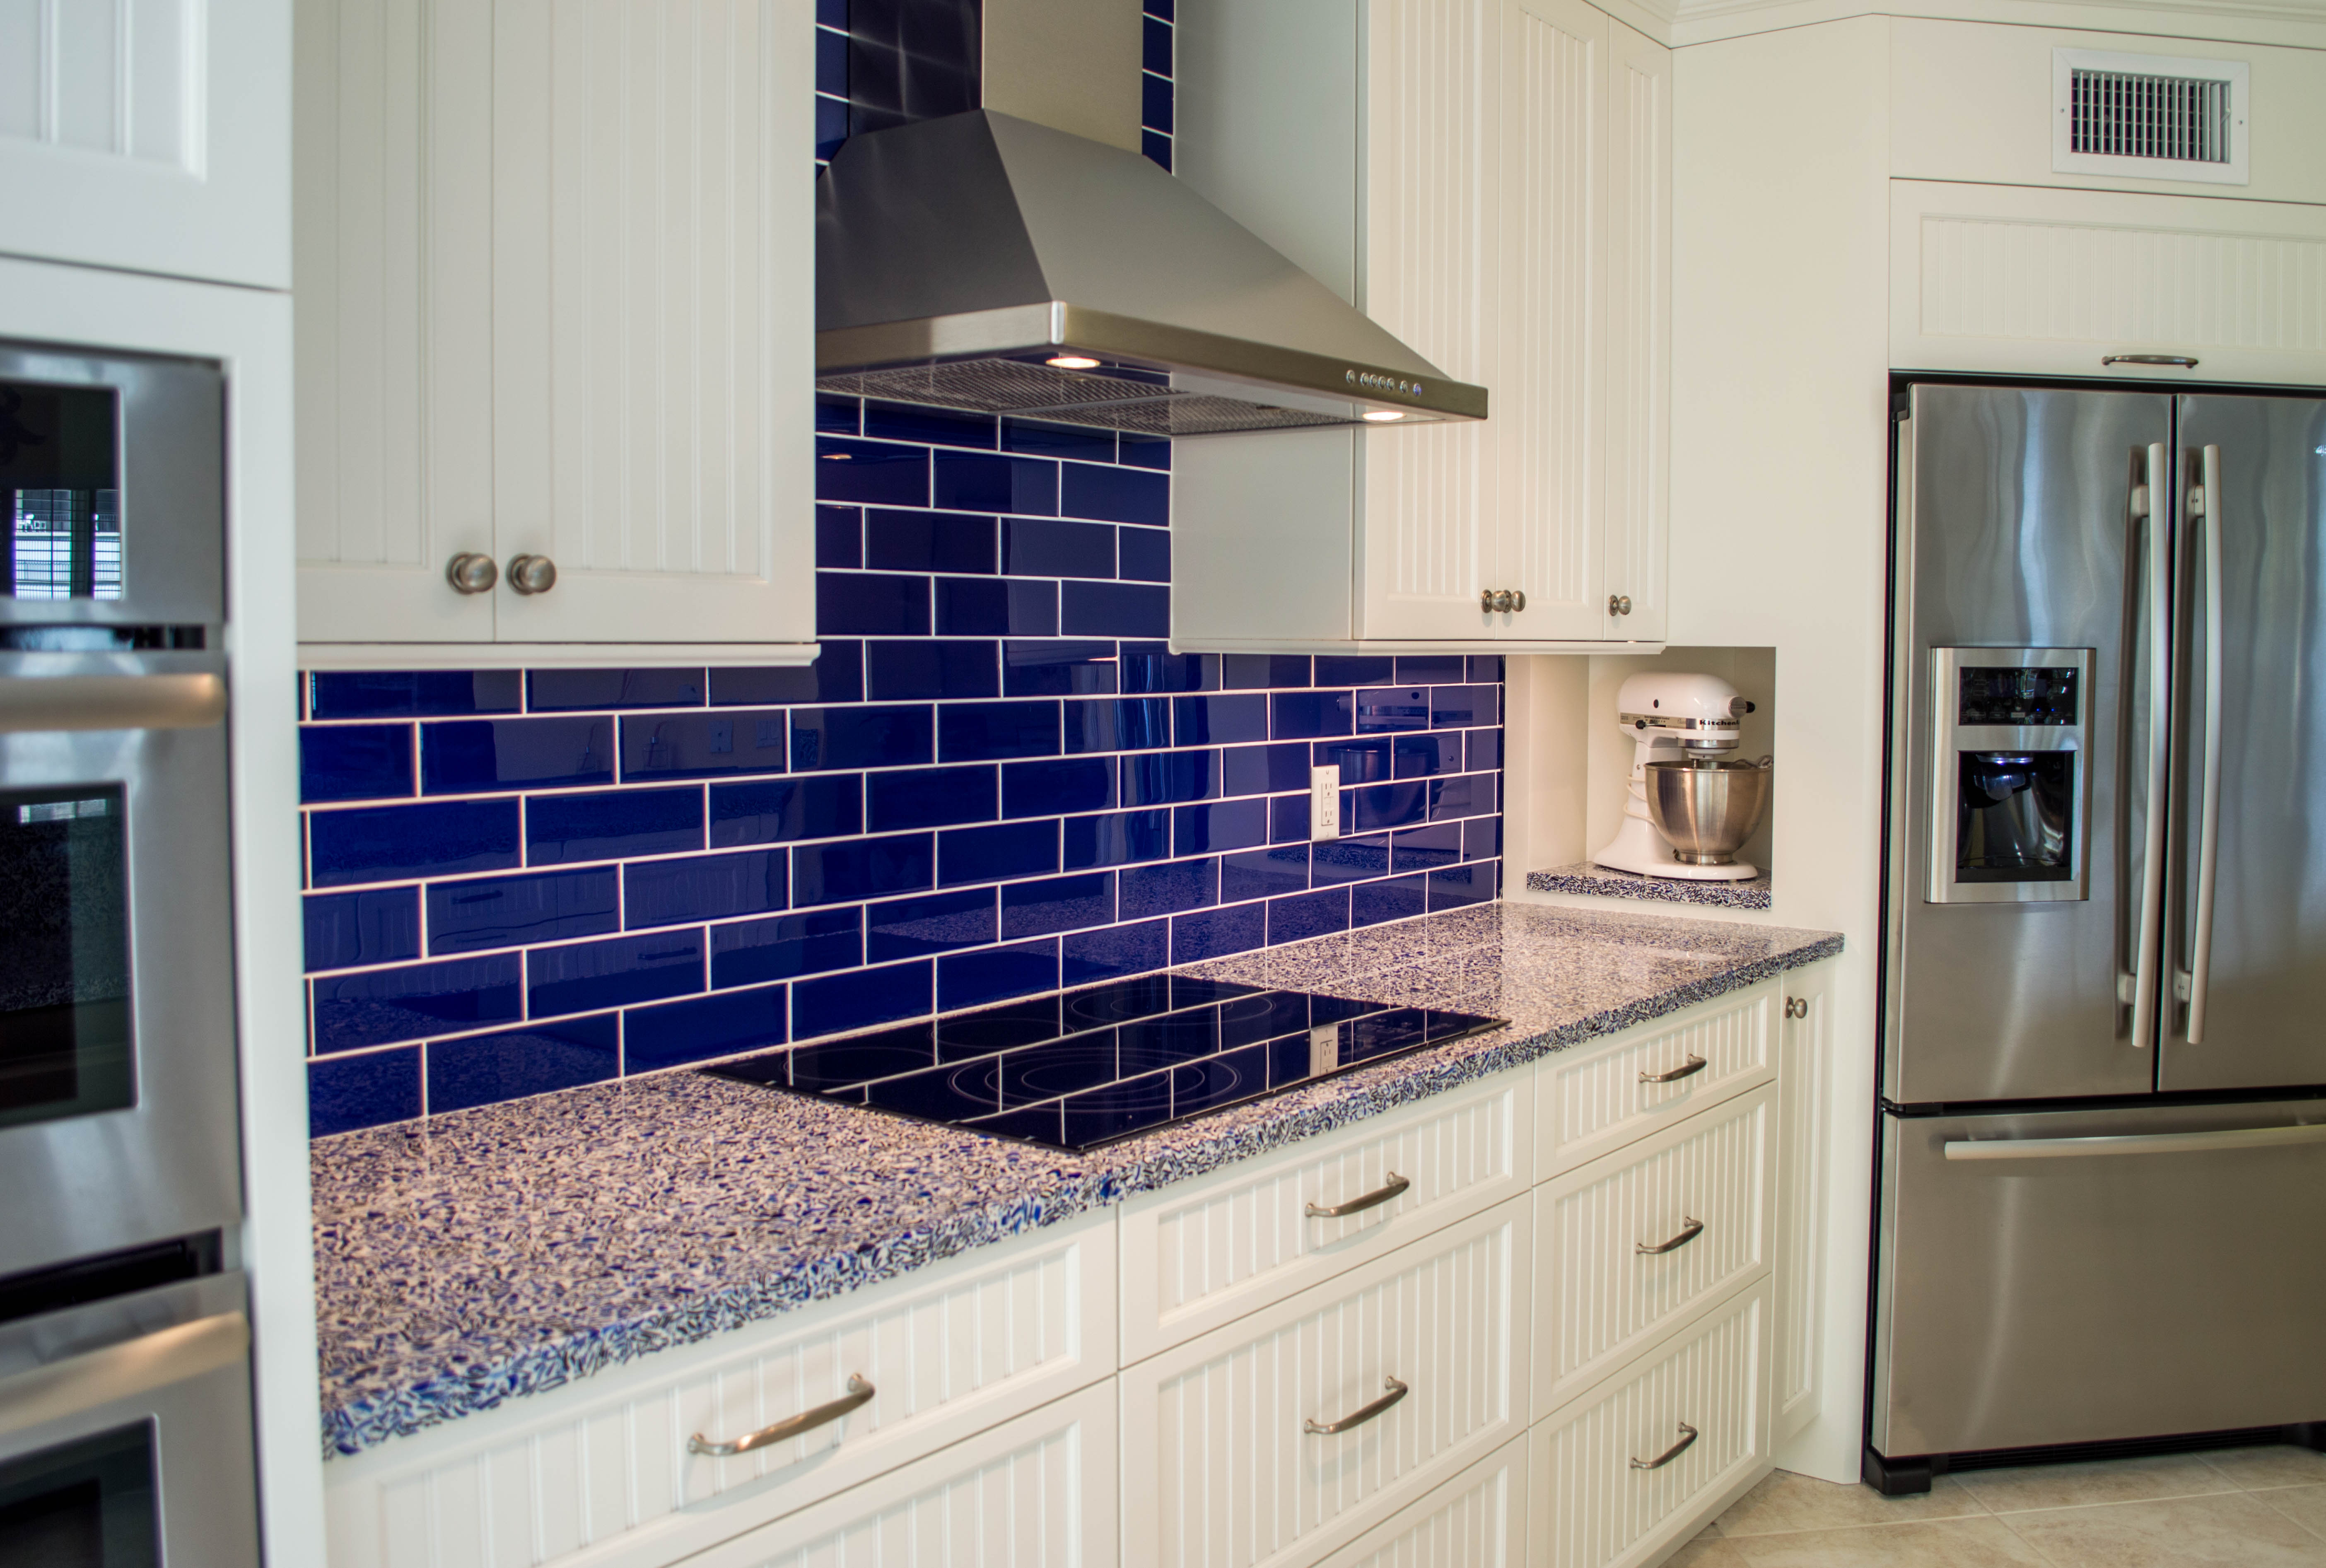 3-vetrazzo recycled glass in cobalt skye for countertops and creative kitchen storage by waterview kitchens